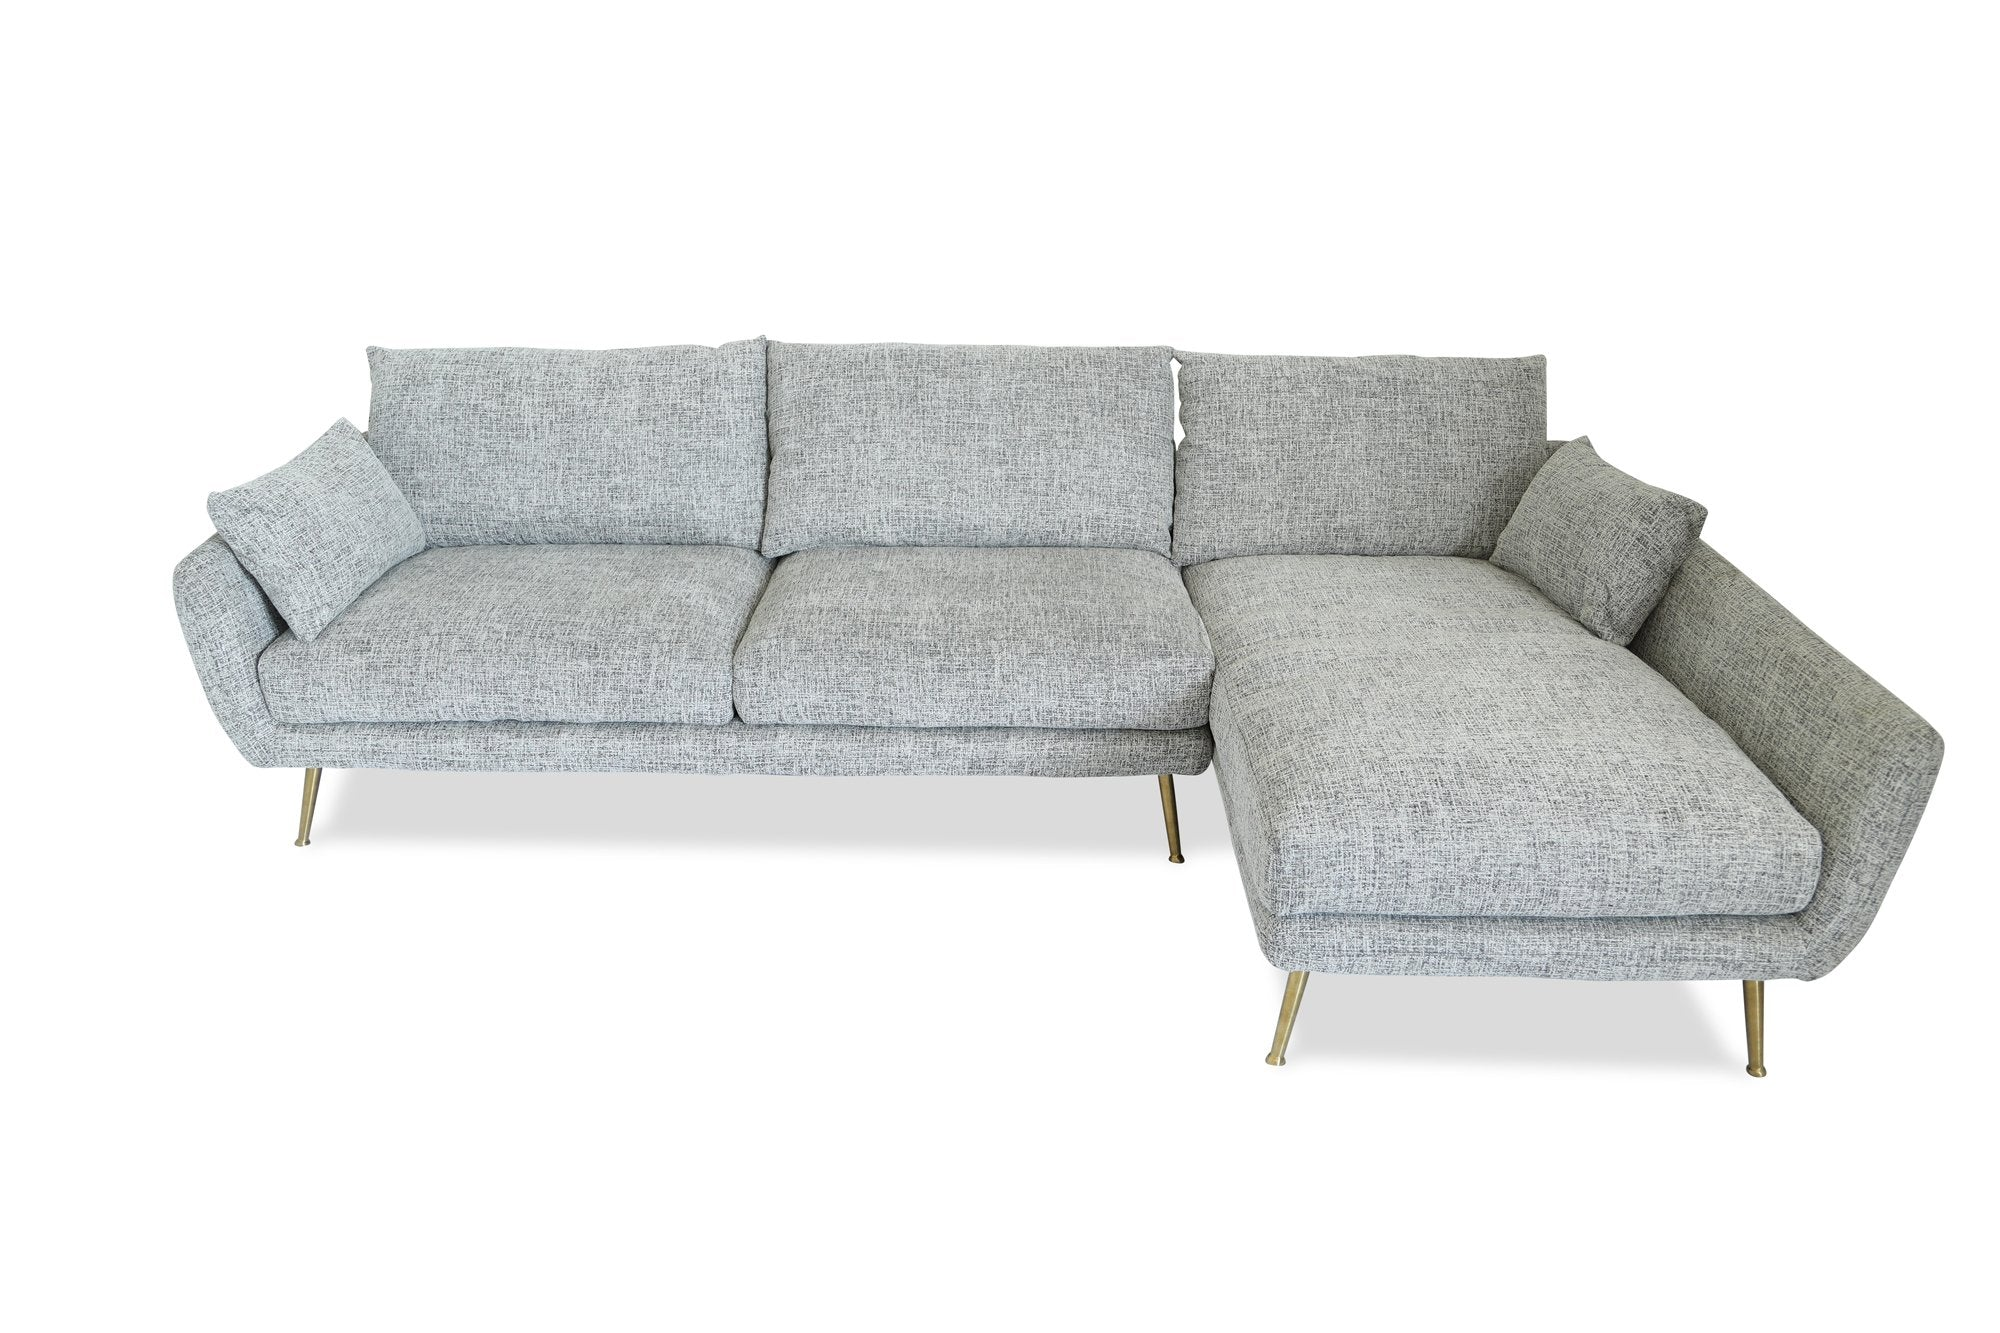 Buy Edloe Finch Ef Zx Sc002r Harlow Mid Century Modern Sectional Sofa Fulton Grey Right Facing At Contemporary Furniture Warehouse